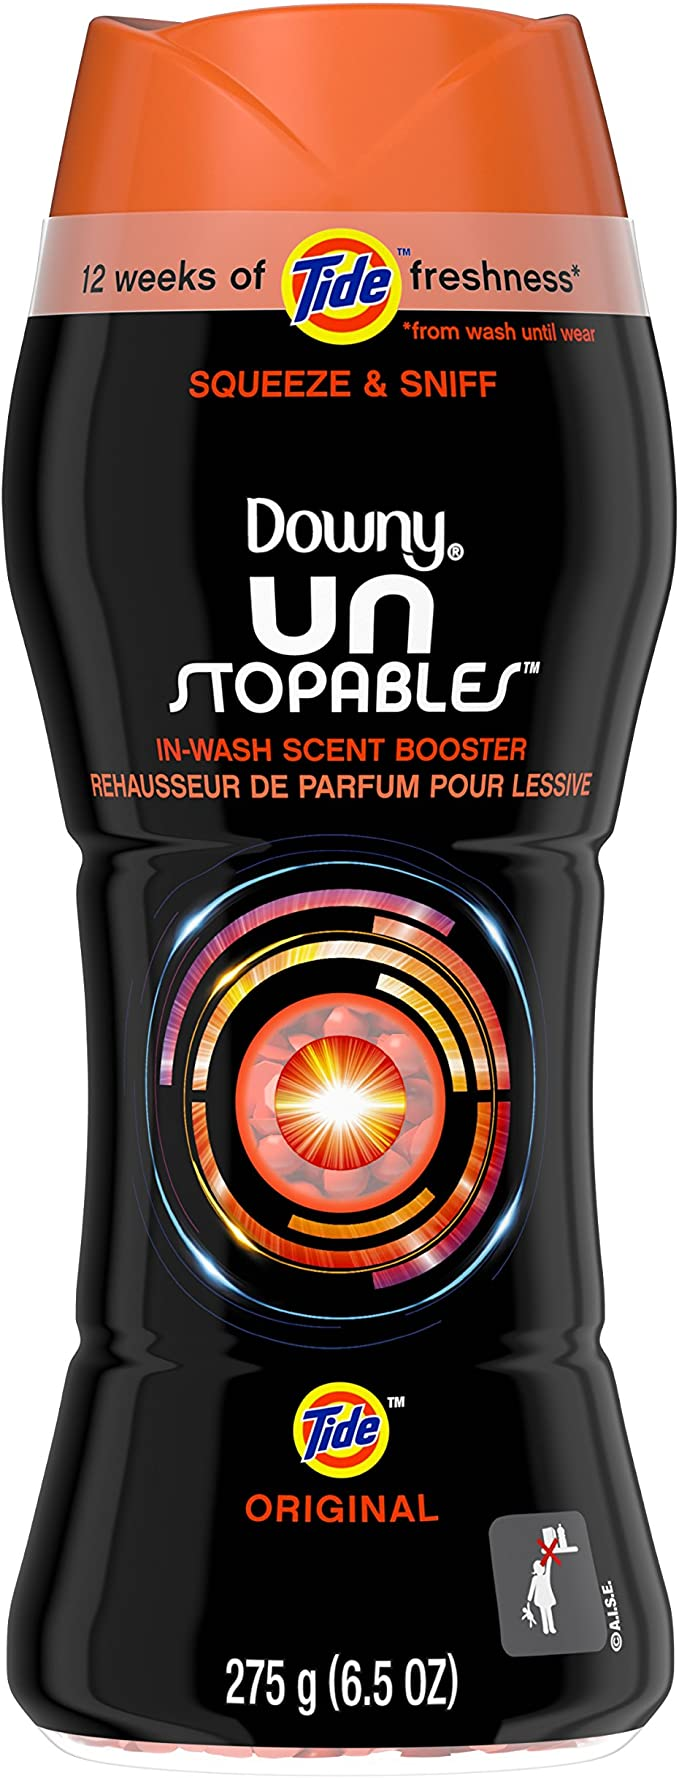 Downy Unstoppables In-Wash Scent Booster Tide Original 6.5 oz.